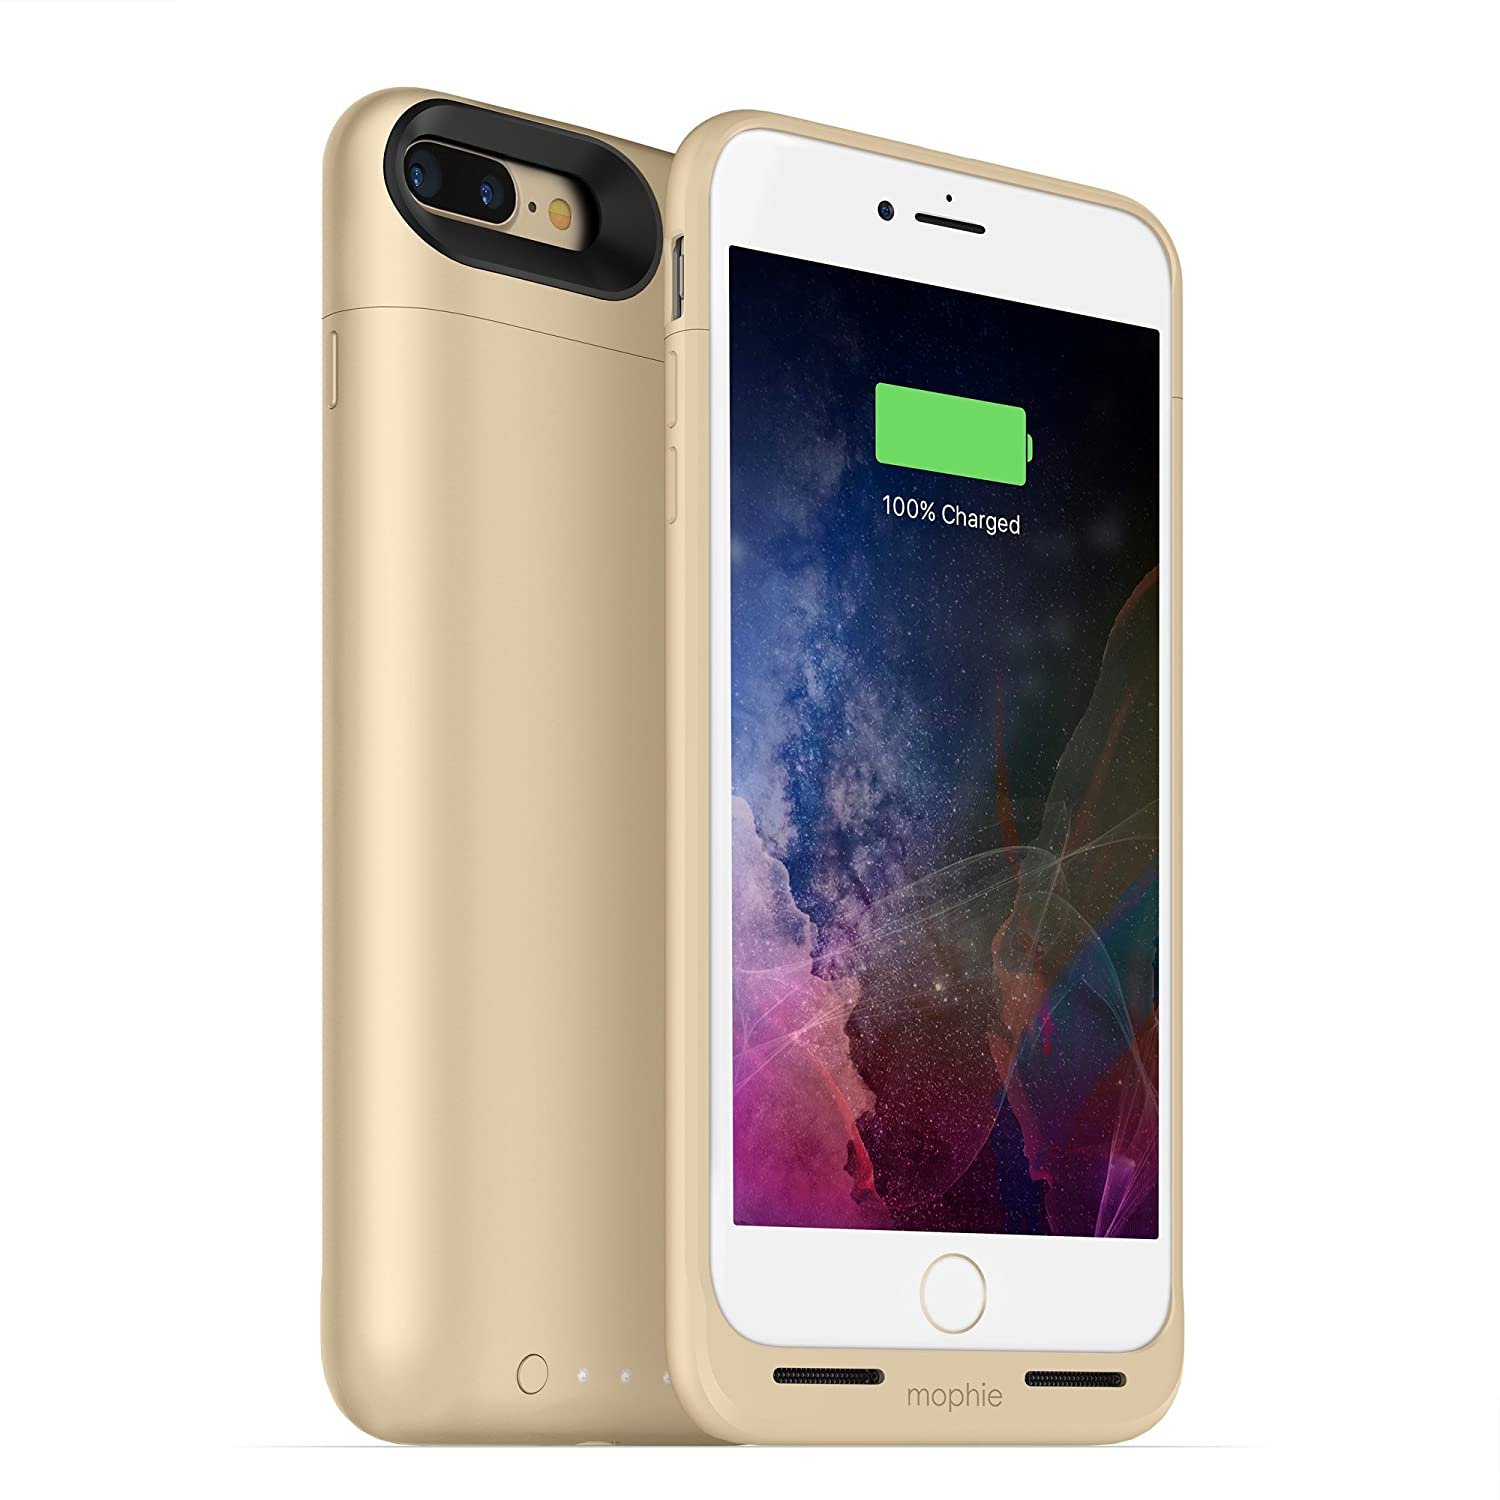 mophie juice pack wireless  - Charge Force Wireless Power - Wireless Charging Protective Battery Pack Case for iPhone 7 Plus – Rose Gold MOPQ9 3786_JPA-IP7P-RGLD